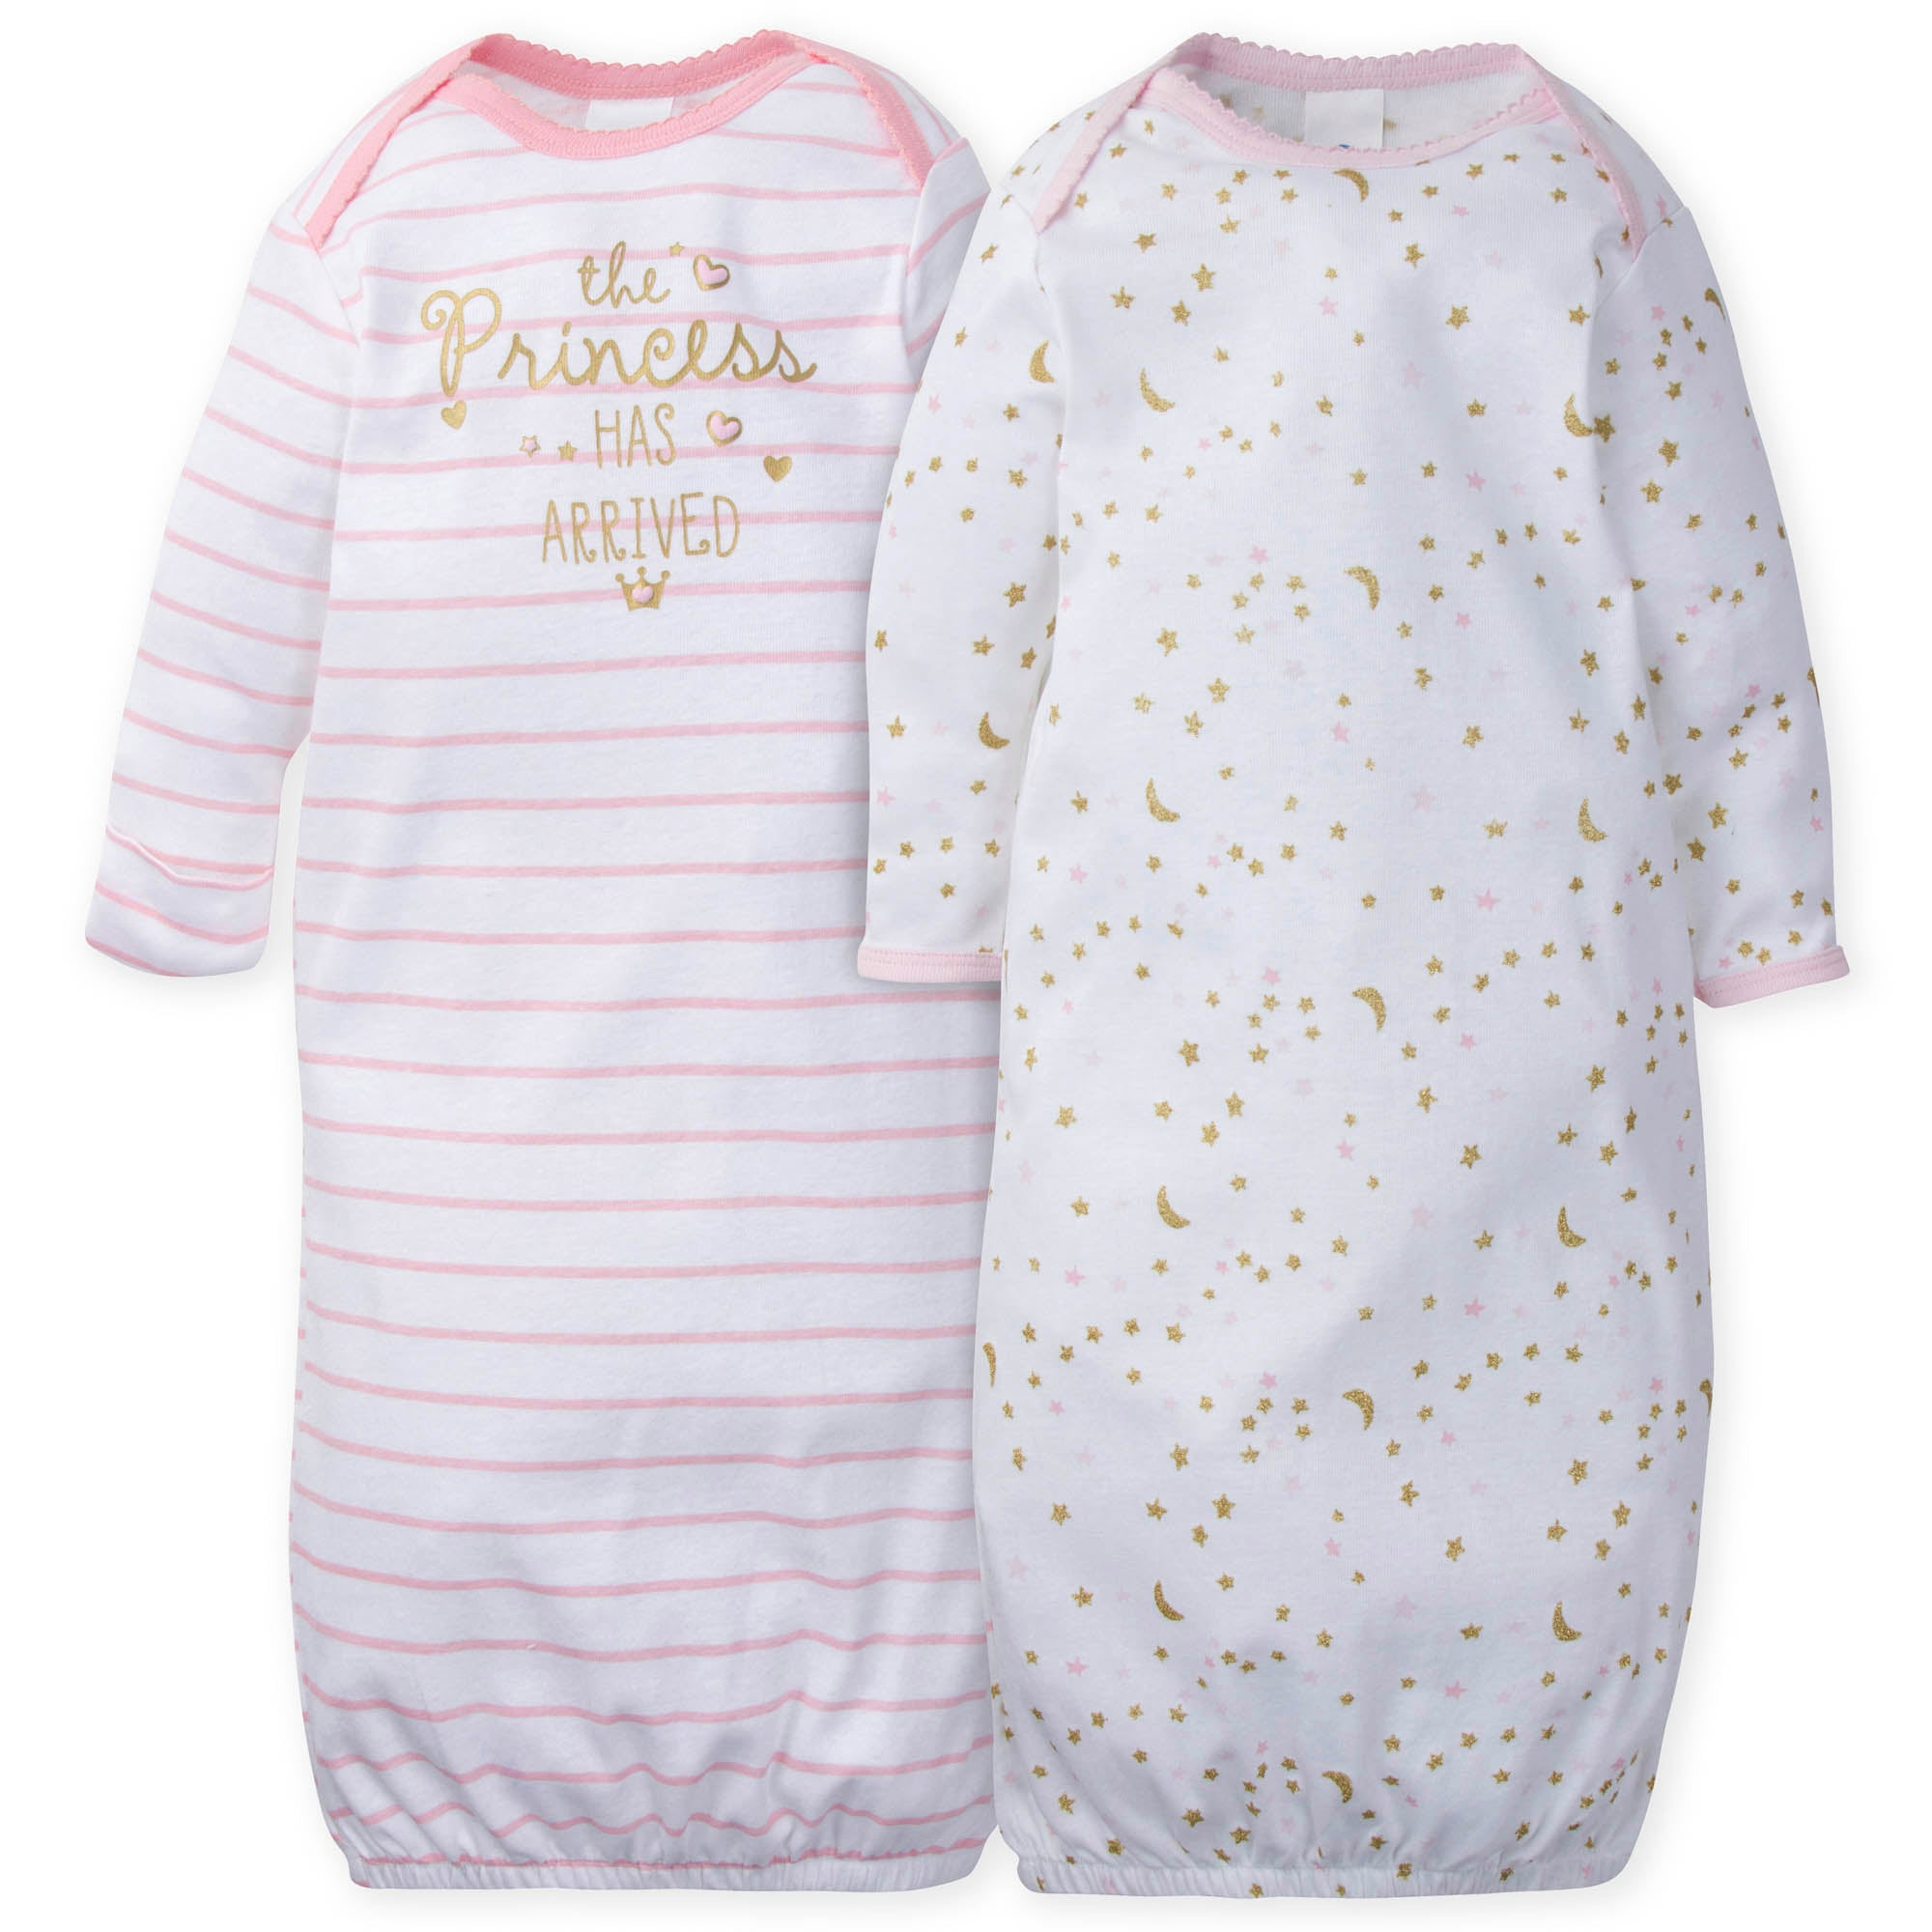 2-Pack Girls Princess Castle Gowns-Gerber Childrenswear Wholesale